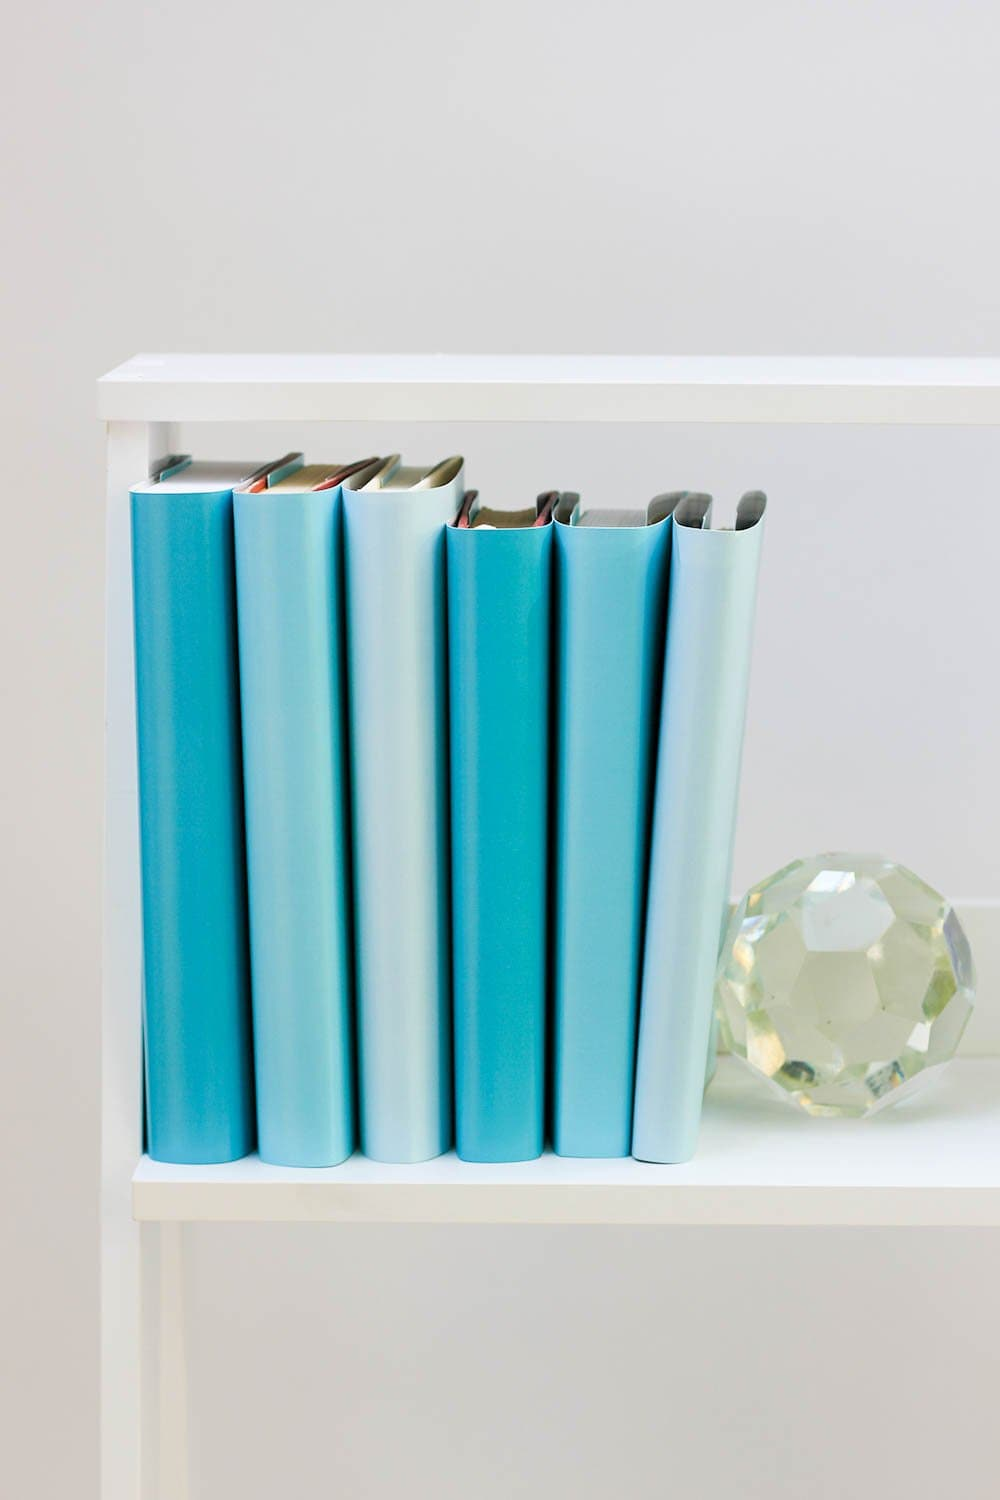 Large and small blue books from blue book covers